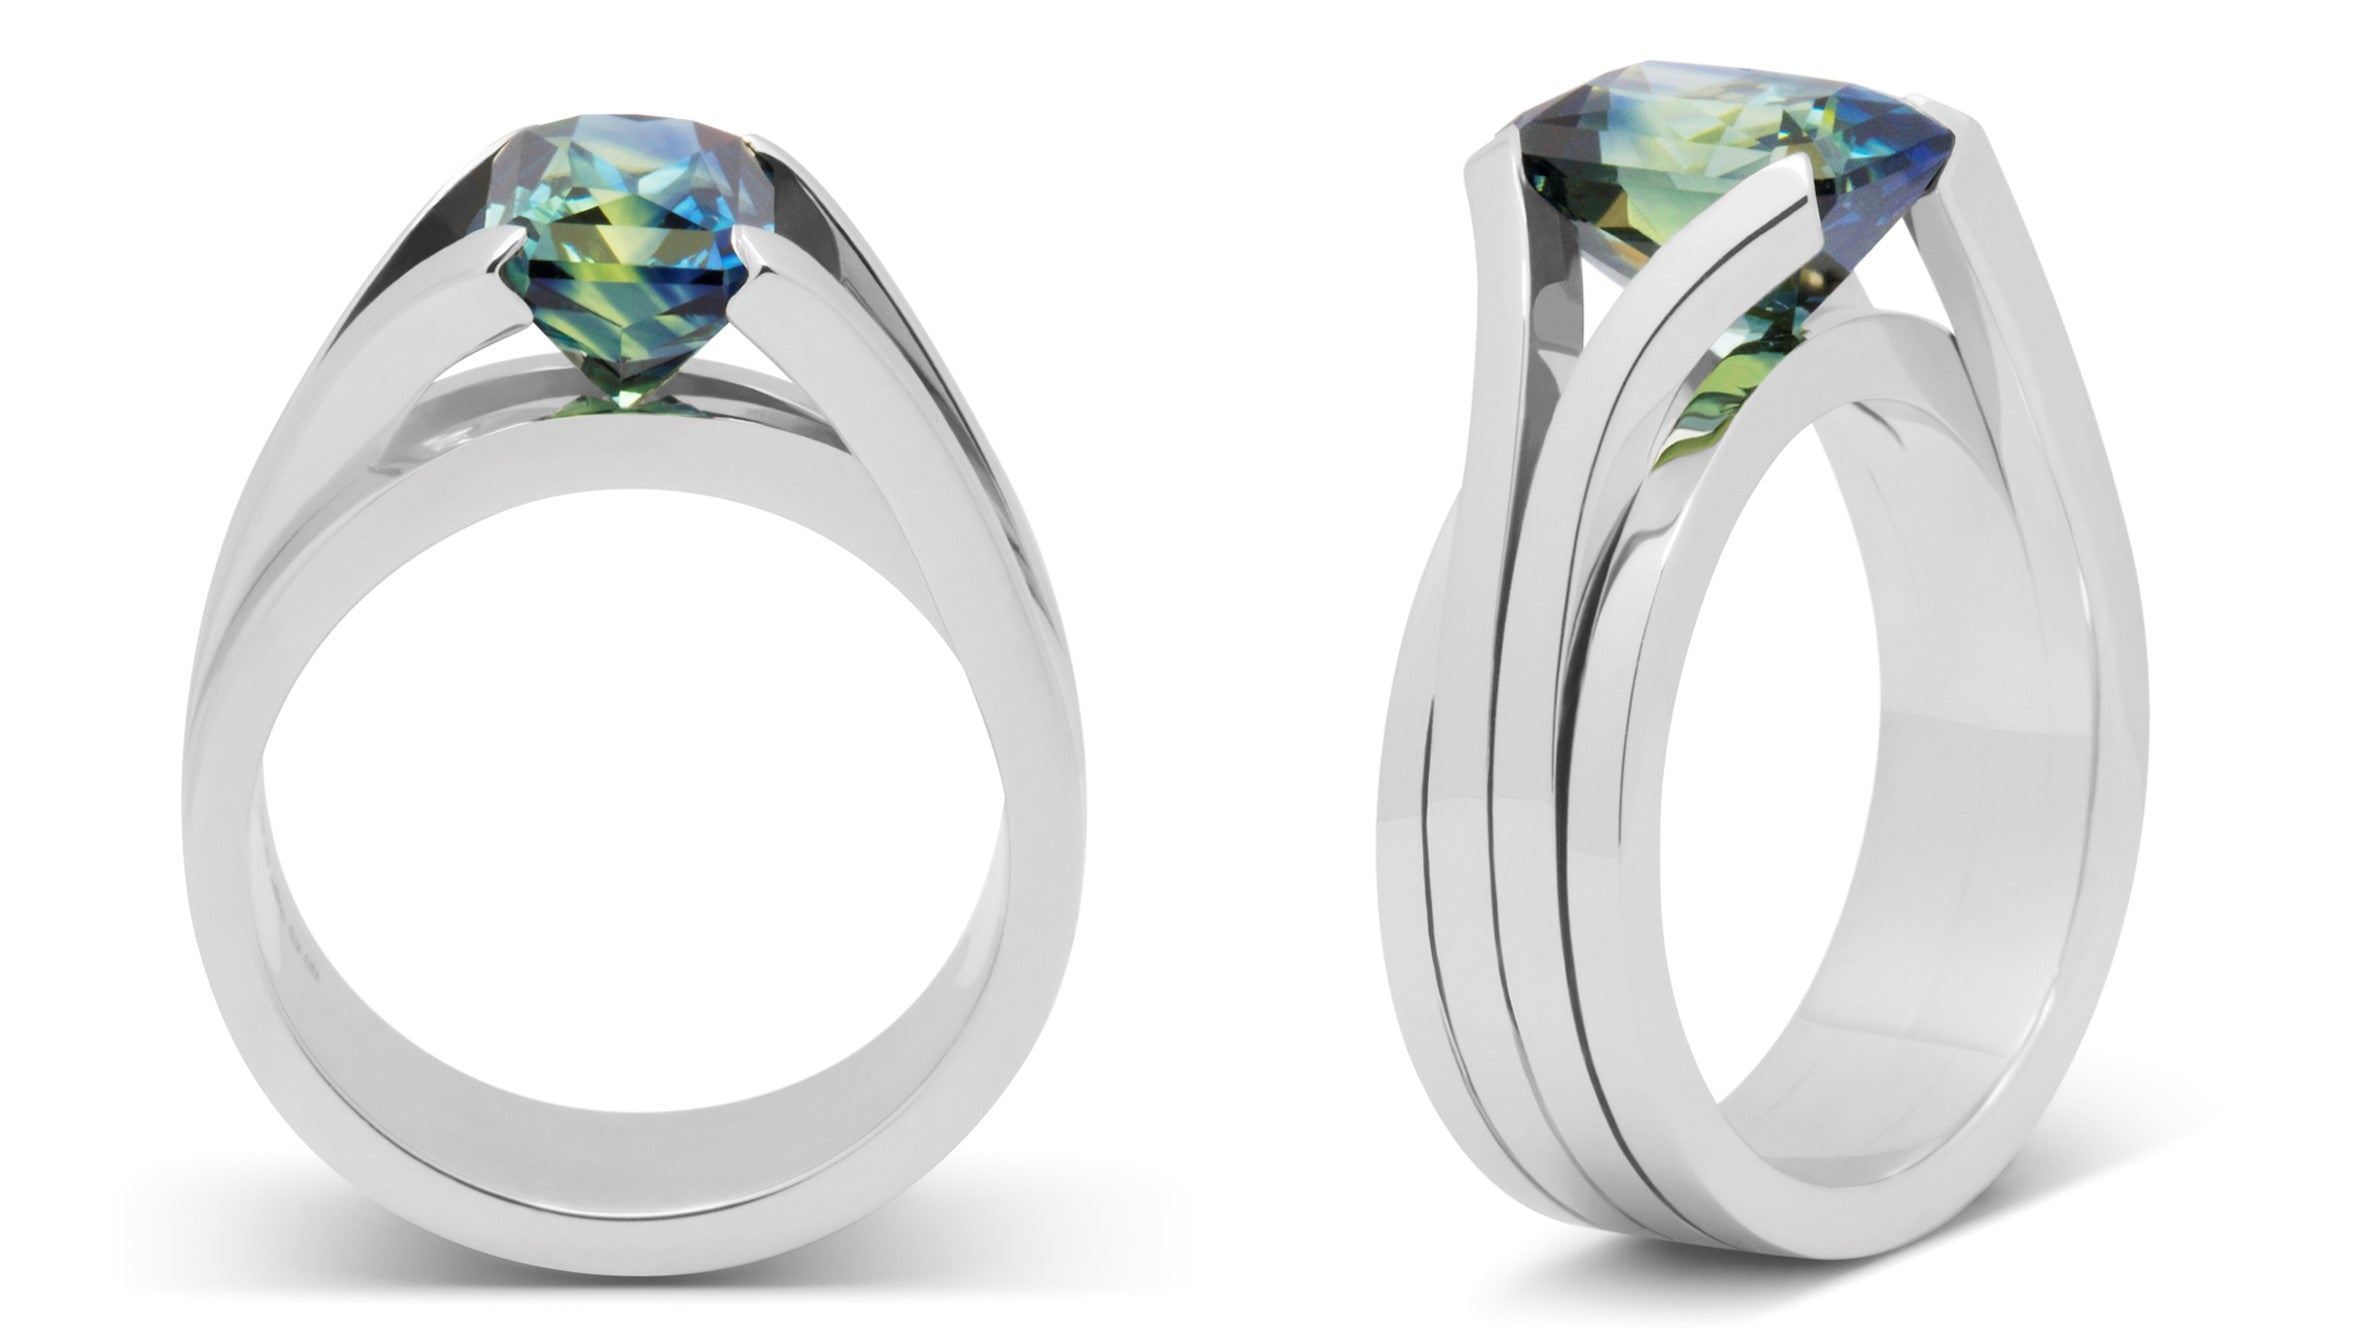 Bespoke platinum and blue green sapphire engagement ring design and made for Matt, by Amanda Mansell